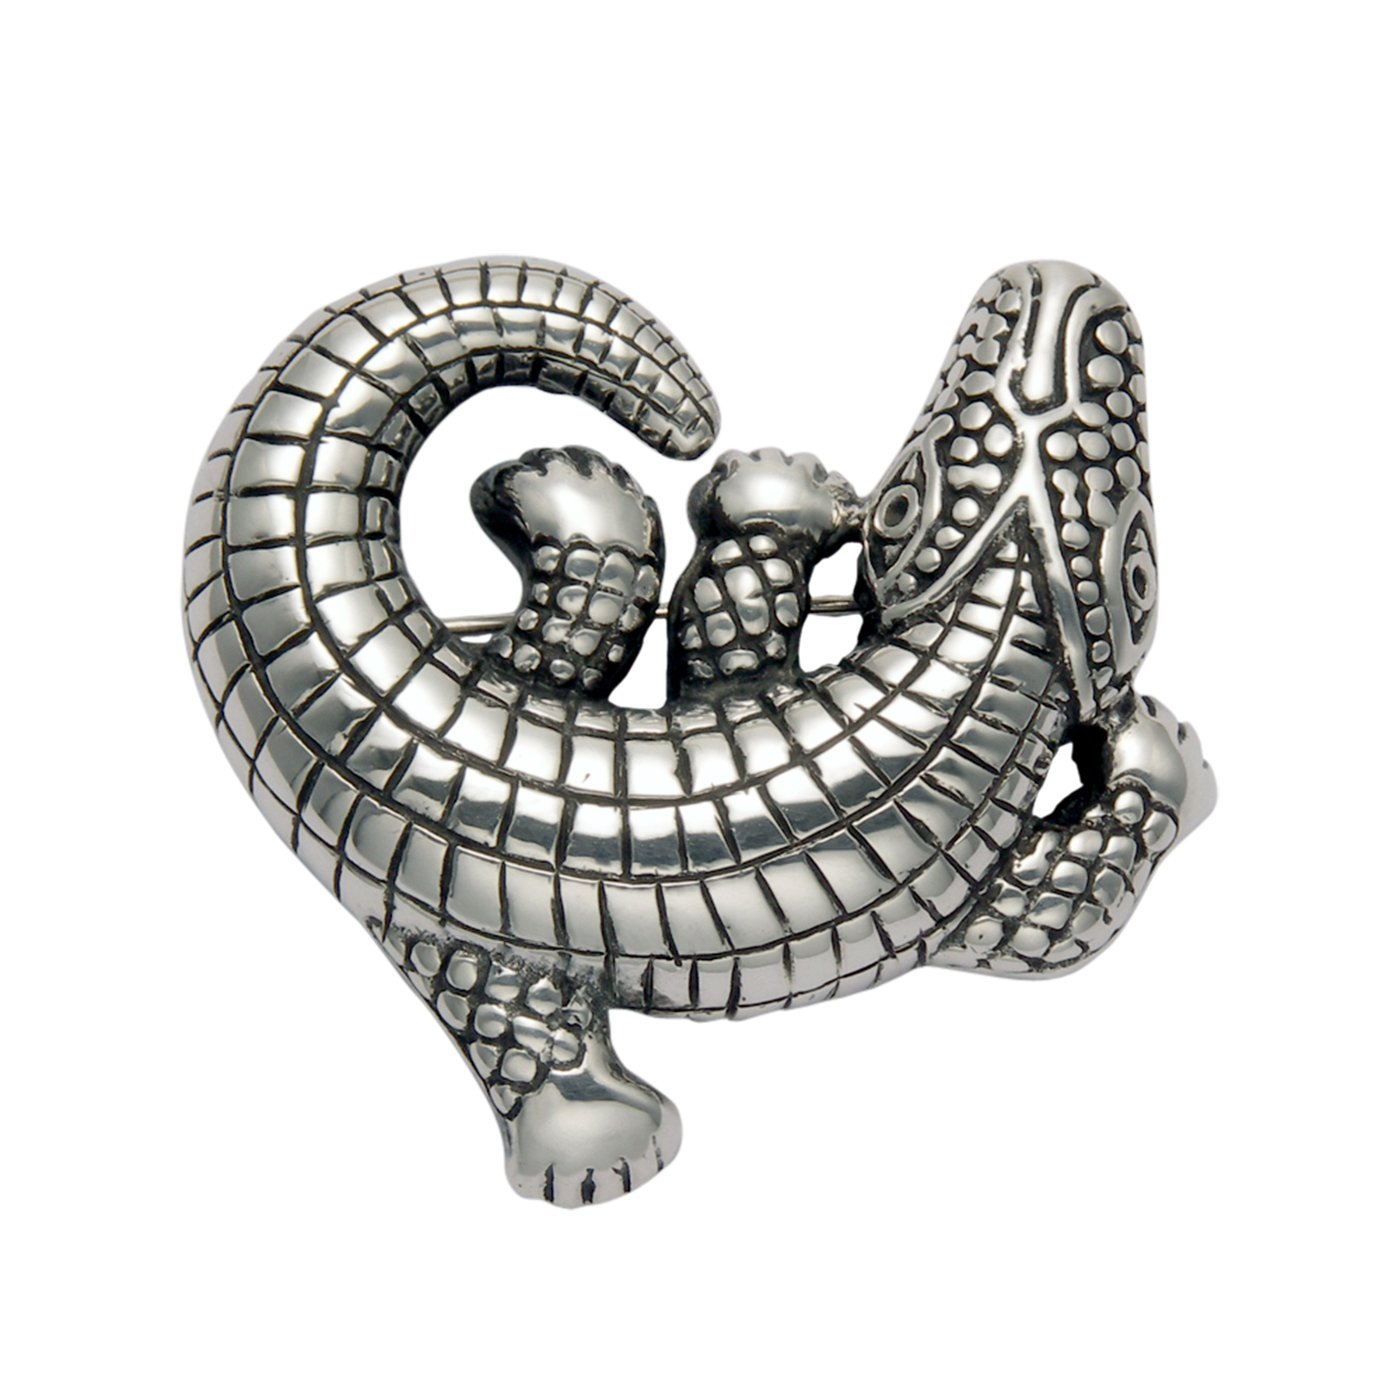 Sterling Silver Alligator Pin w/Curled Tail by Wild Things